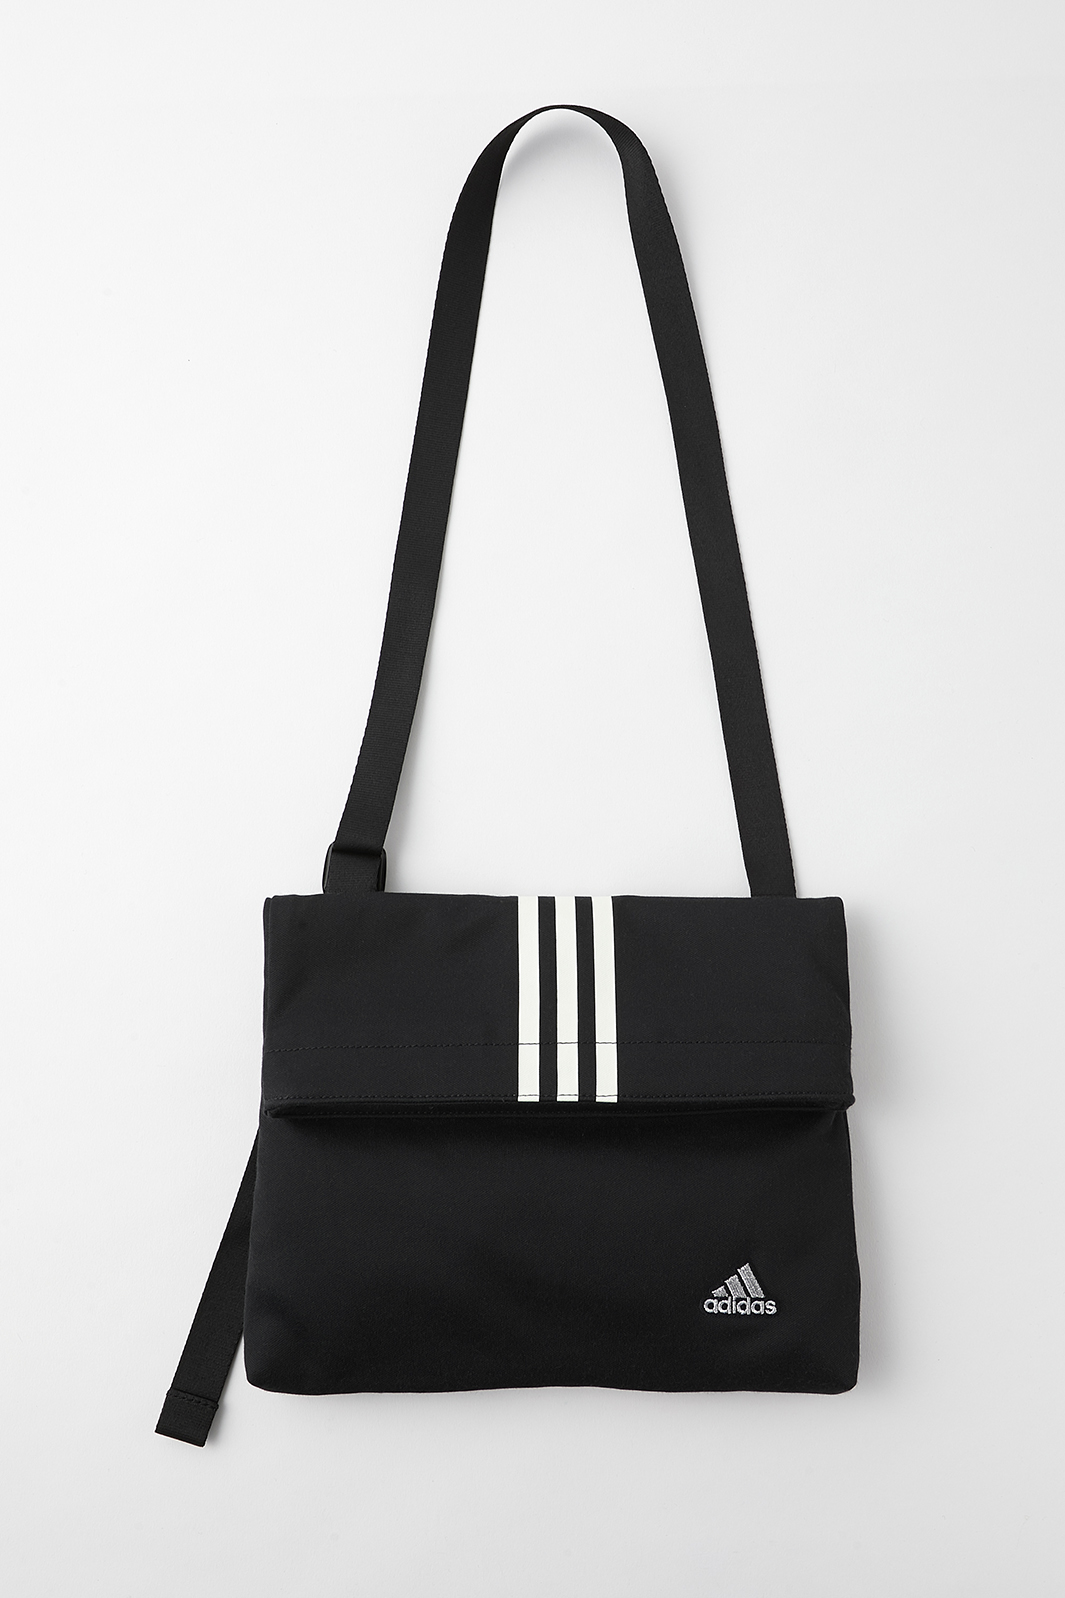 「adidas & MOUSSY」SACOCHE MSY(提供写真)